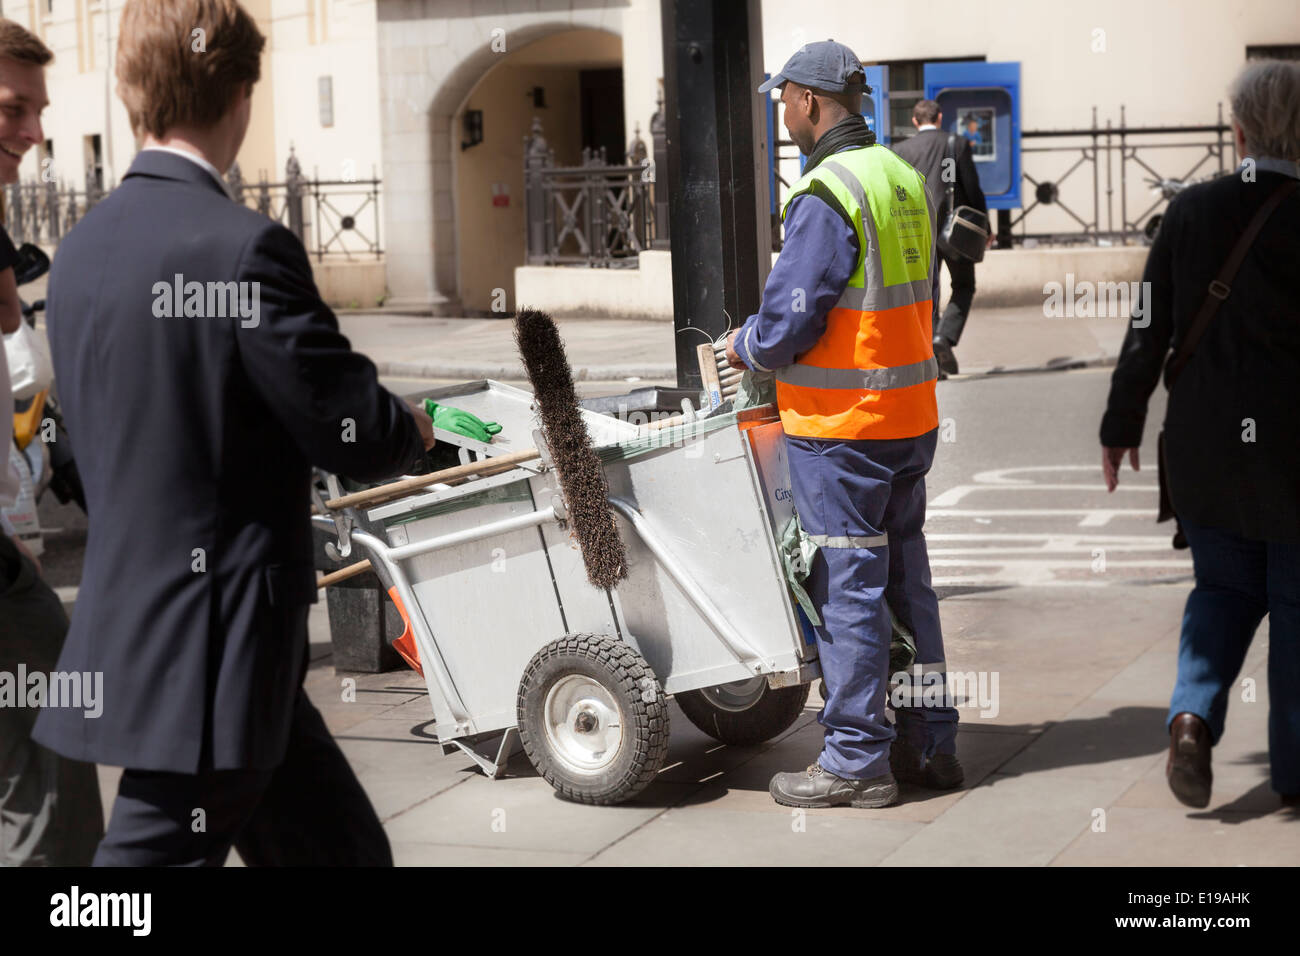 Street cleaner with cart amidst the bustle of a London street. - Stock Image